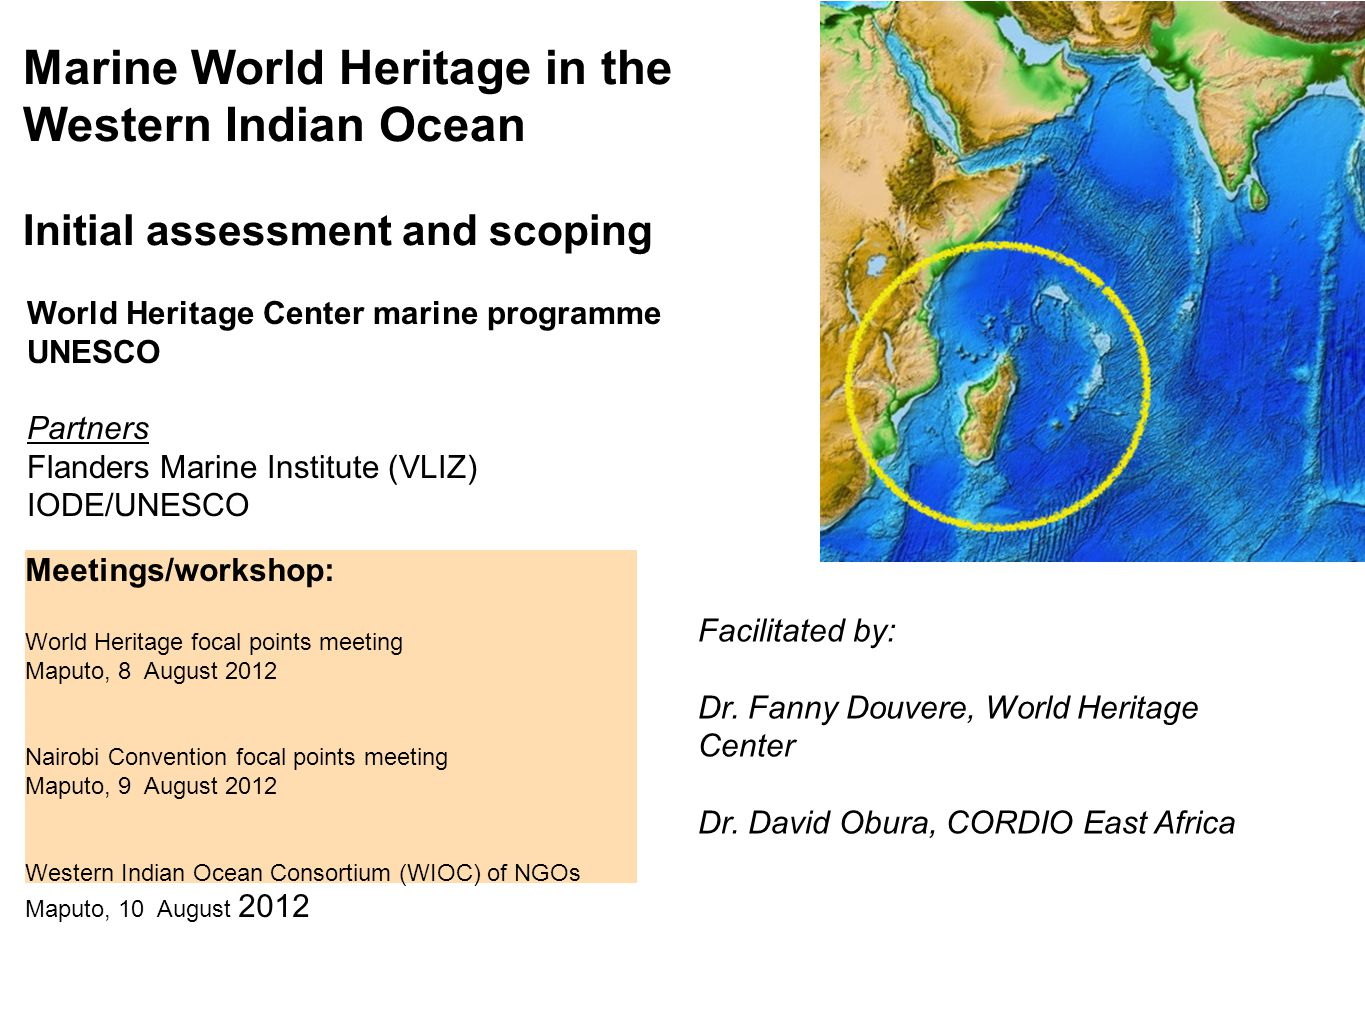 Marine World Heritage in the Western Indian Ocean Initial assessment and scoping World Heritage Center marine programme UNESCO Partners Flanders Marine Institute (VLIZ) IODE/UNESCO Meetings/workshop: World Heritage focal points meeting Maputo, 8 August 2012 Nairobi Convention focal points meeting Maputo, 9 August 2012 Western Indian Ocean Consortium (WIOC) of NGOs Maputo, 10 August 2012 Facilitated by: Dr.